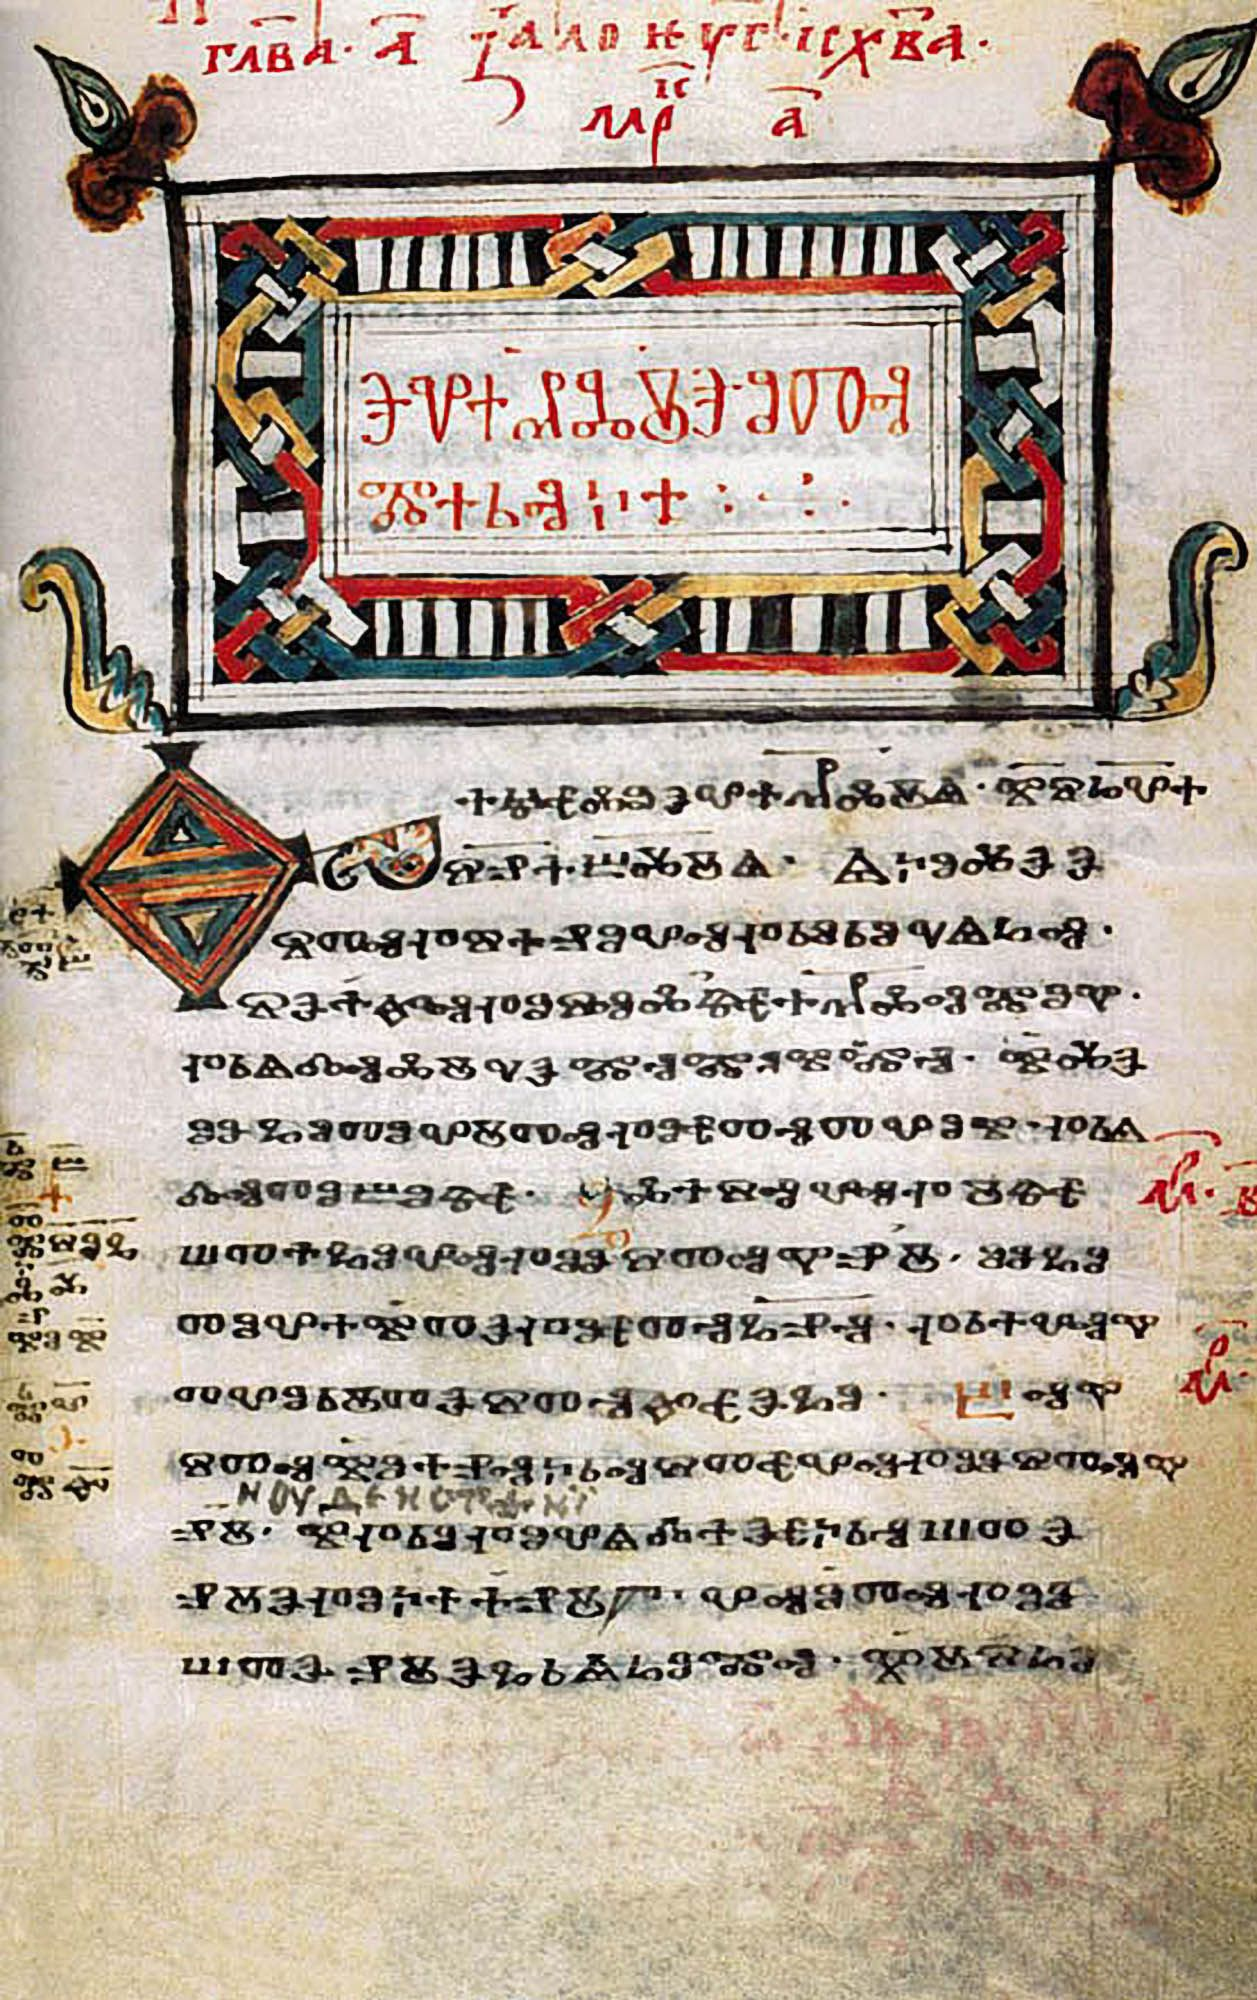 Codex Zographensis Written In Glagolitic Script The Oldest Known Slavic Old Church Slavonic Writing Systems Alphabet